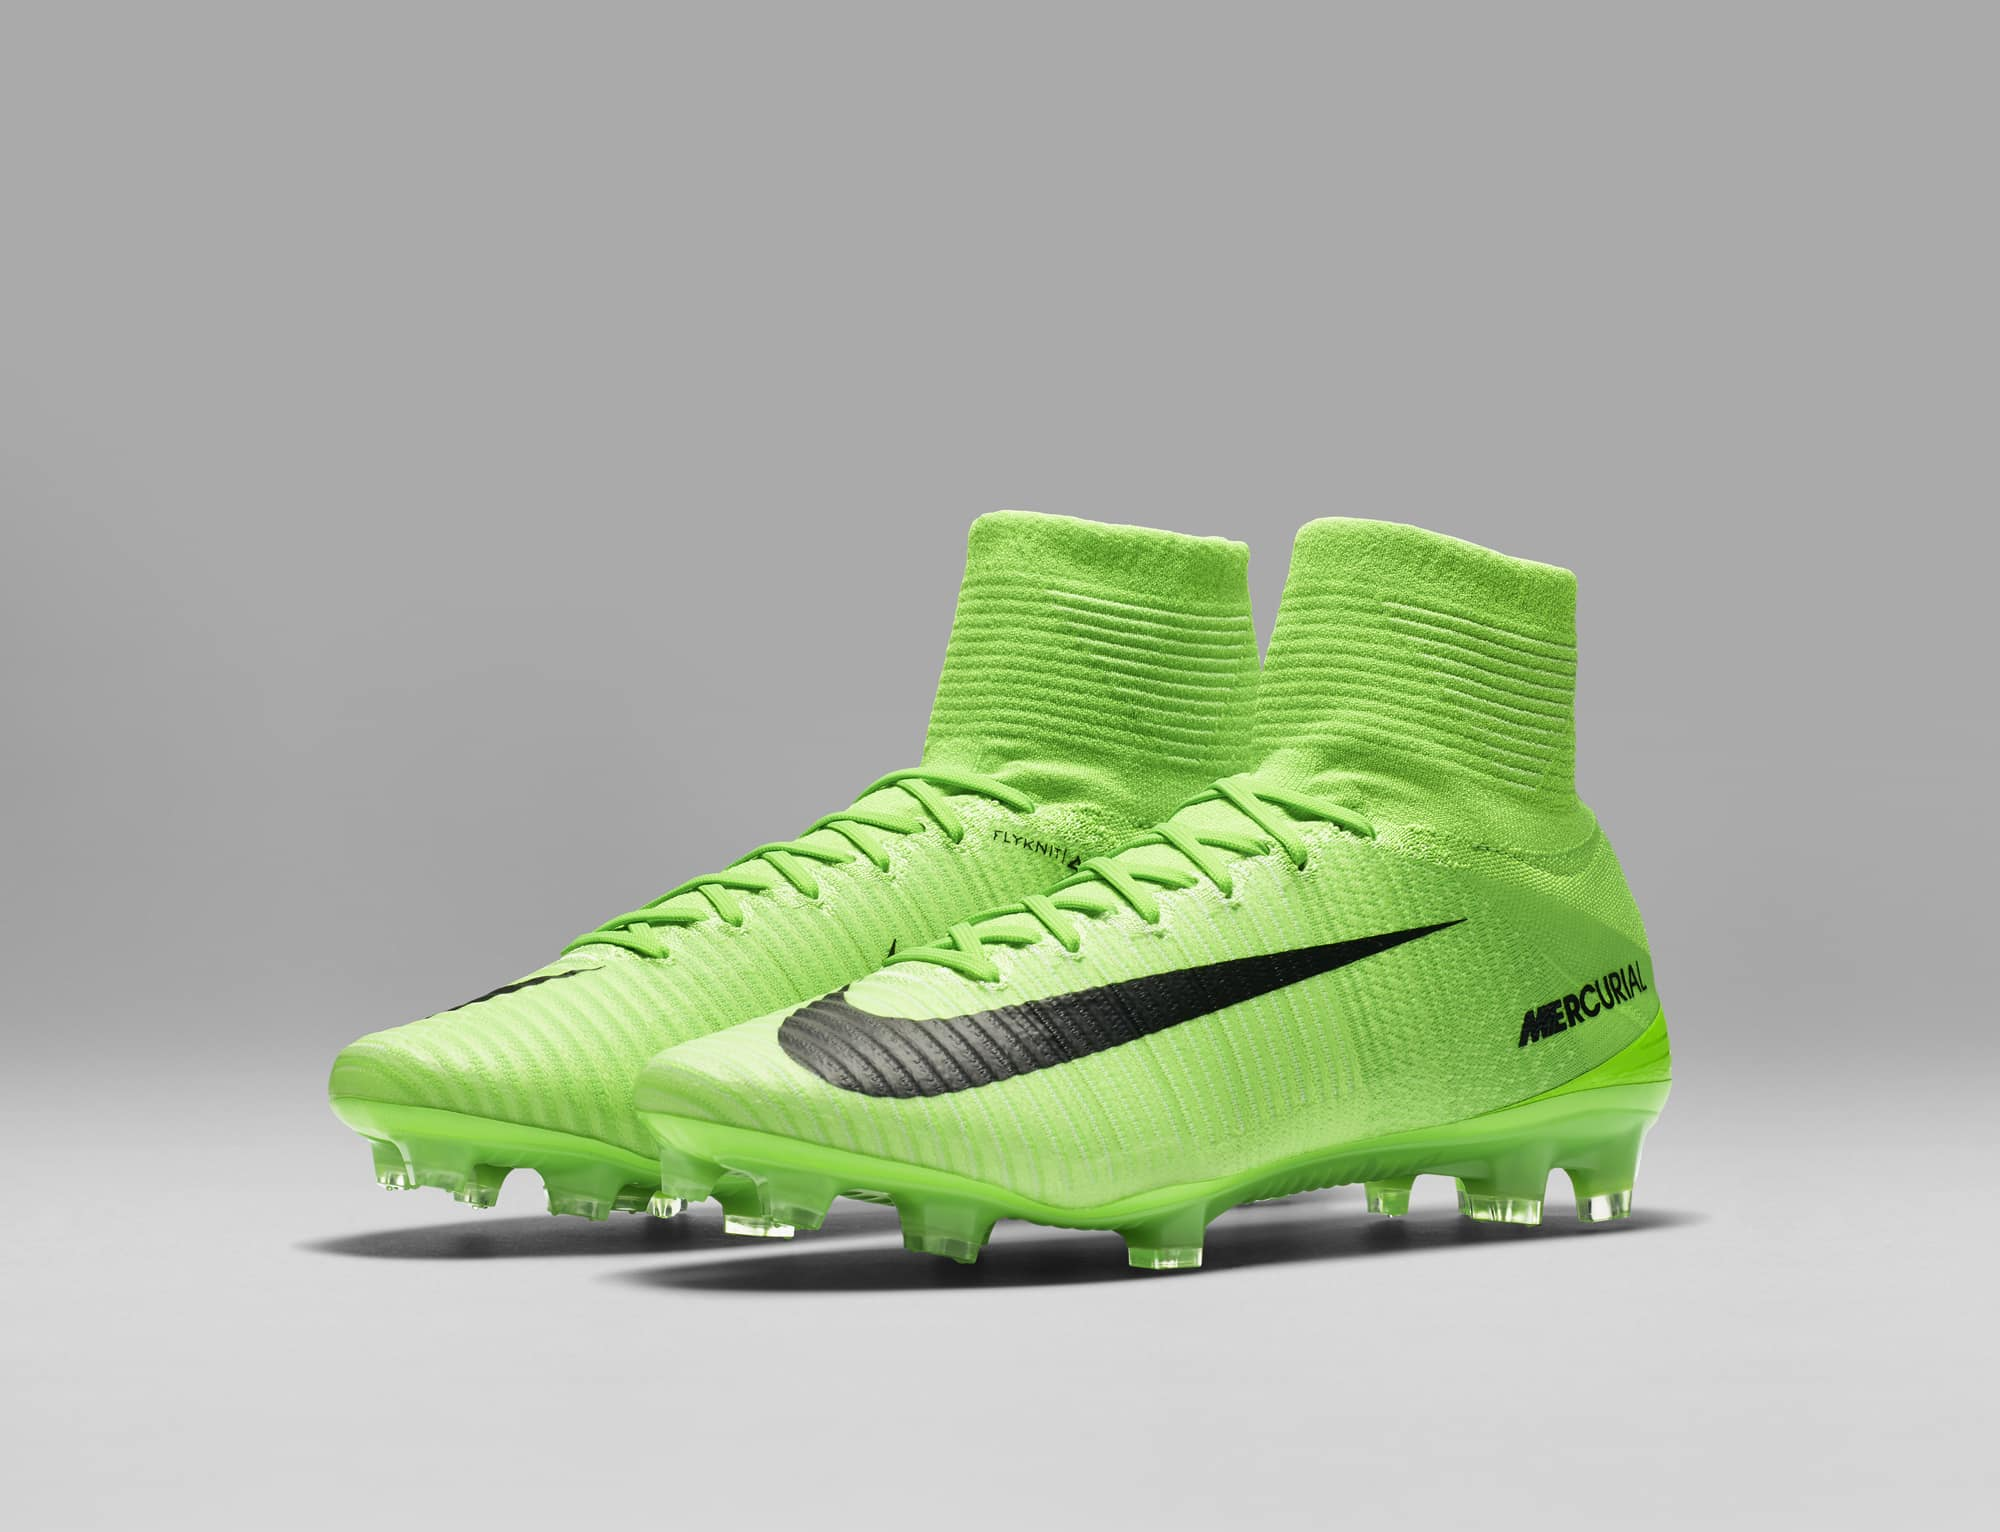 chaussures-football-Nike-Mercurial-Superfly-V-Men-Radiation-Flare-img4